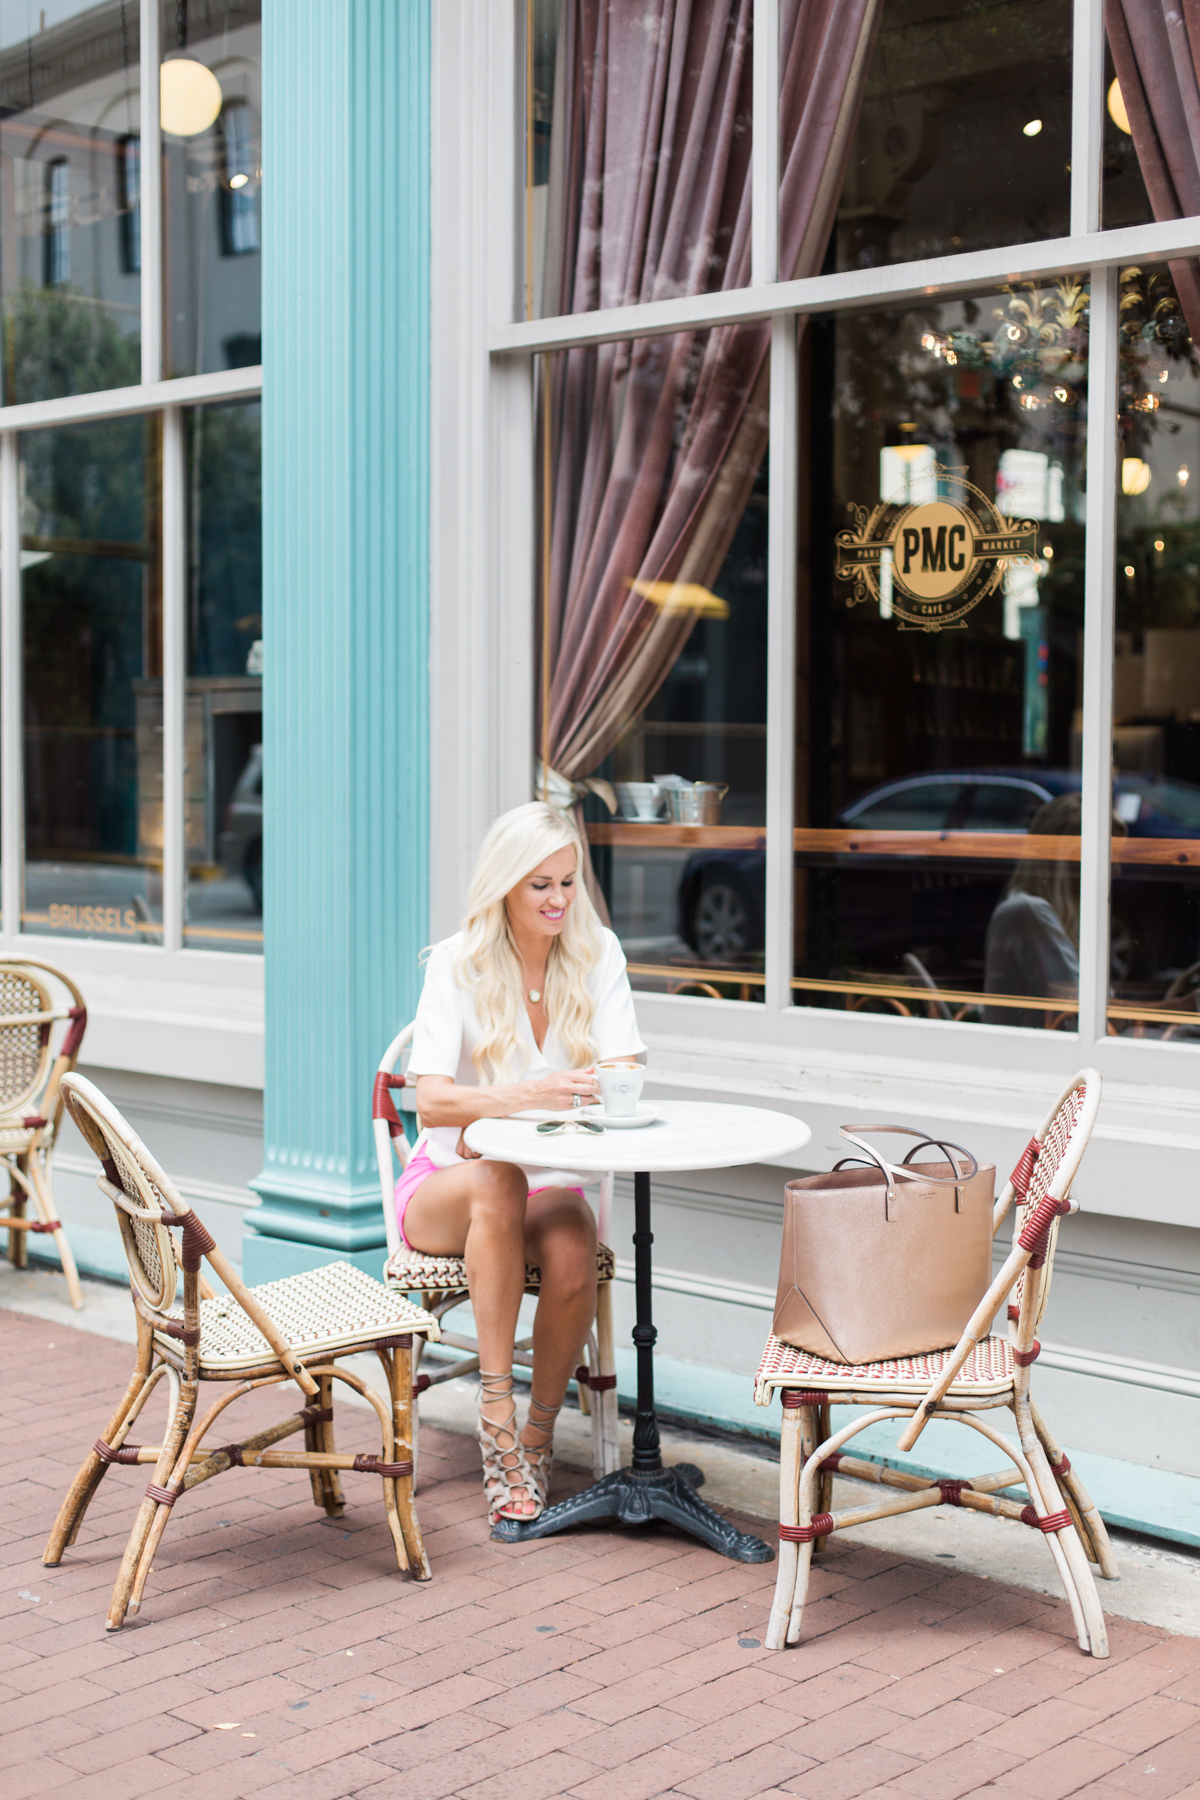 McKenna_Bleu_Fashion_Style_Fall_Travel_Blog_Savannah_Georgia_photo-2304